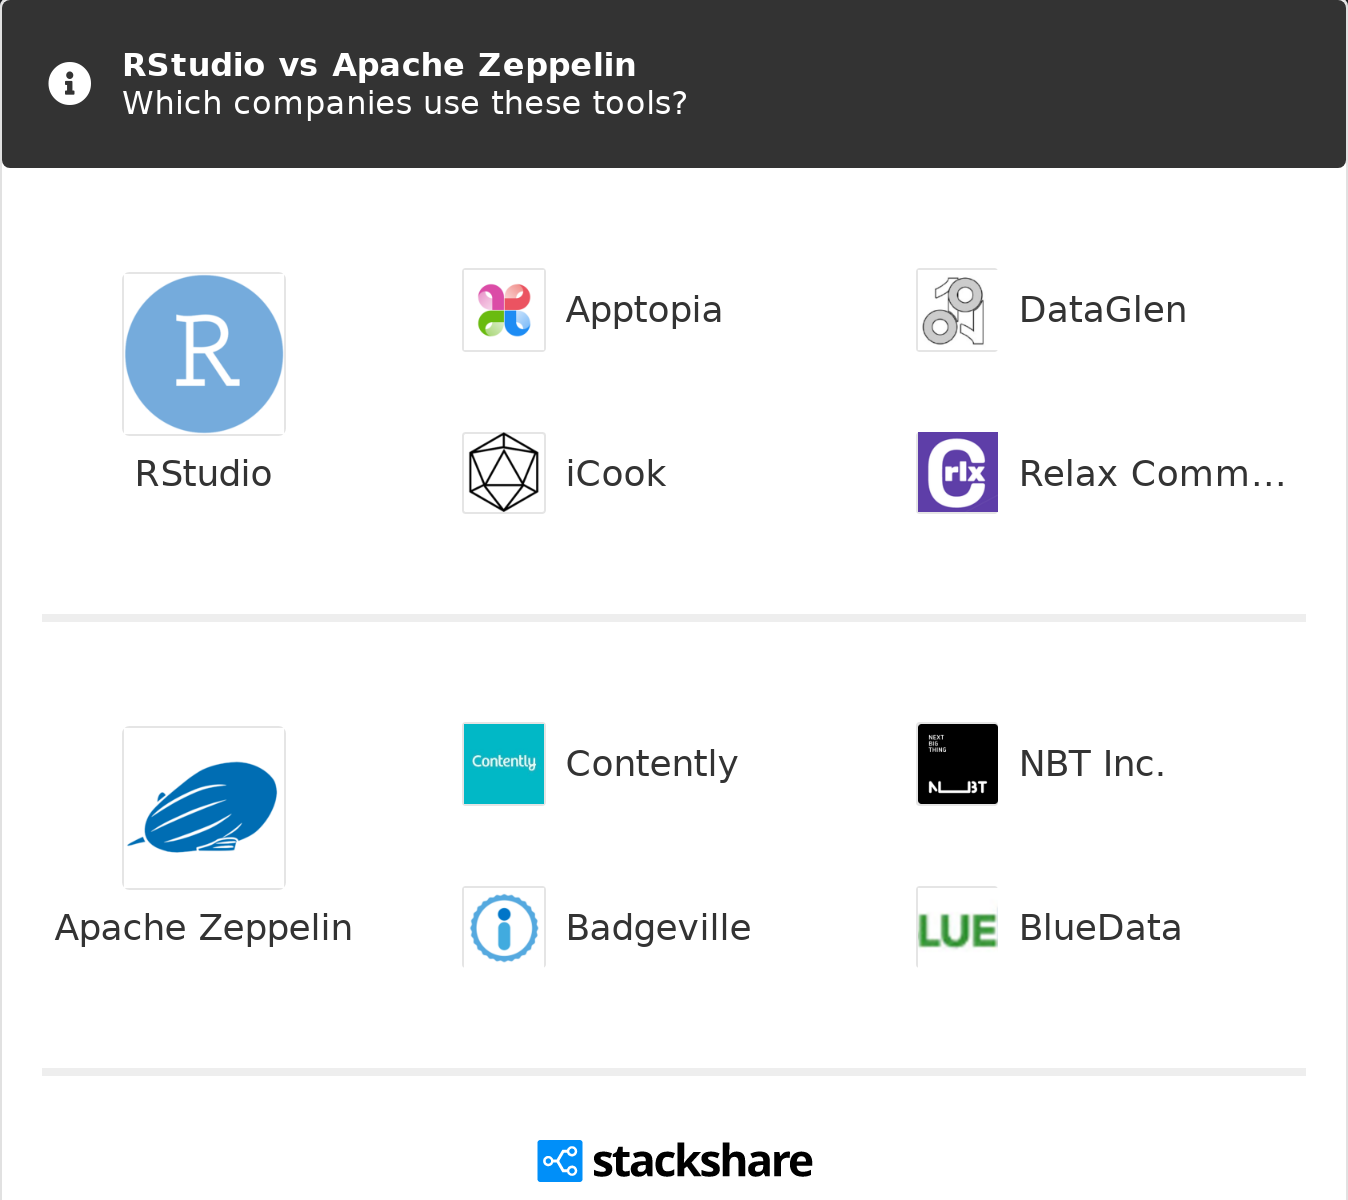 RStudio vs Apache Zeppelin | What are the differences?